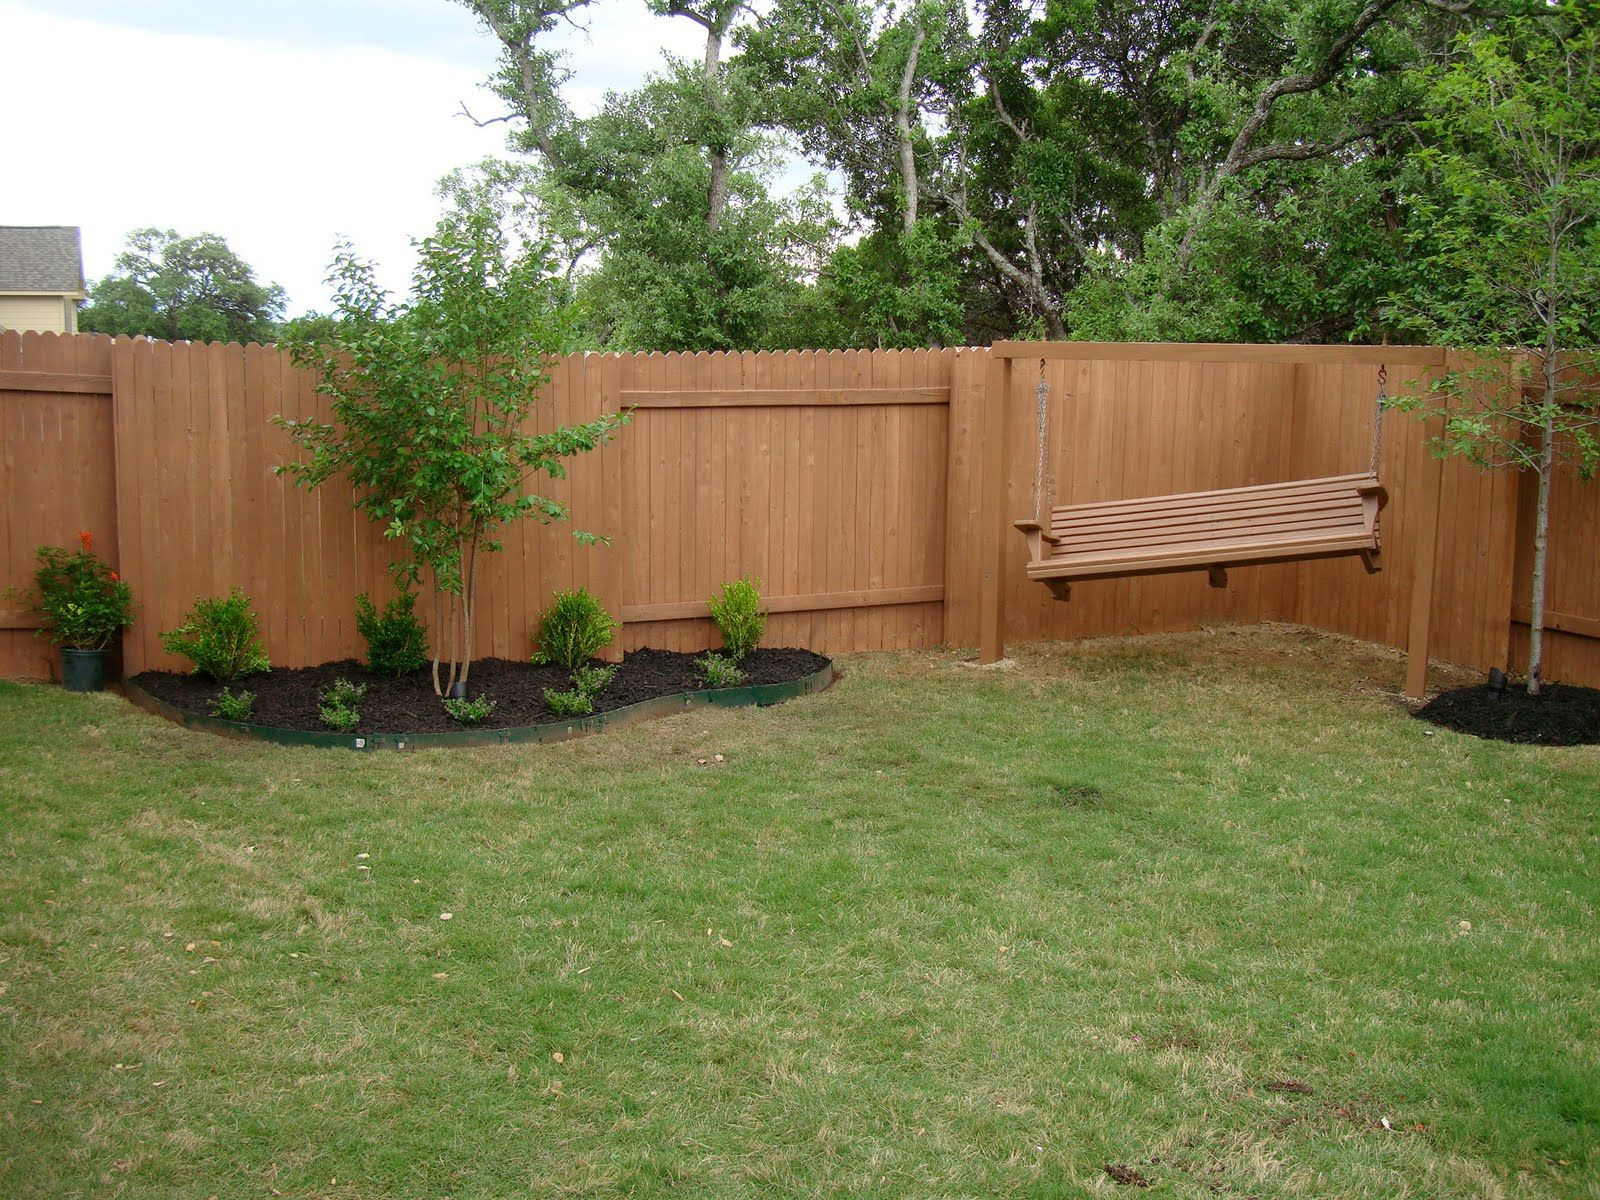 Small bakyards backyard design simple backyard design for Backyard garden design